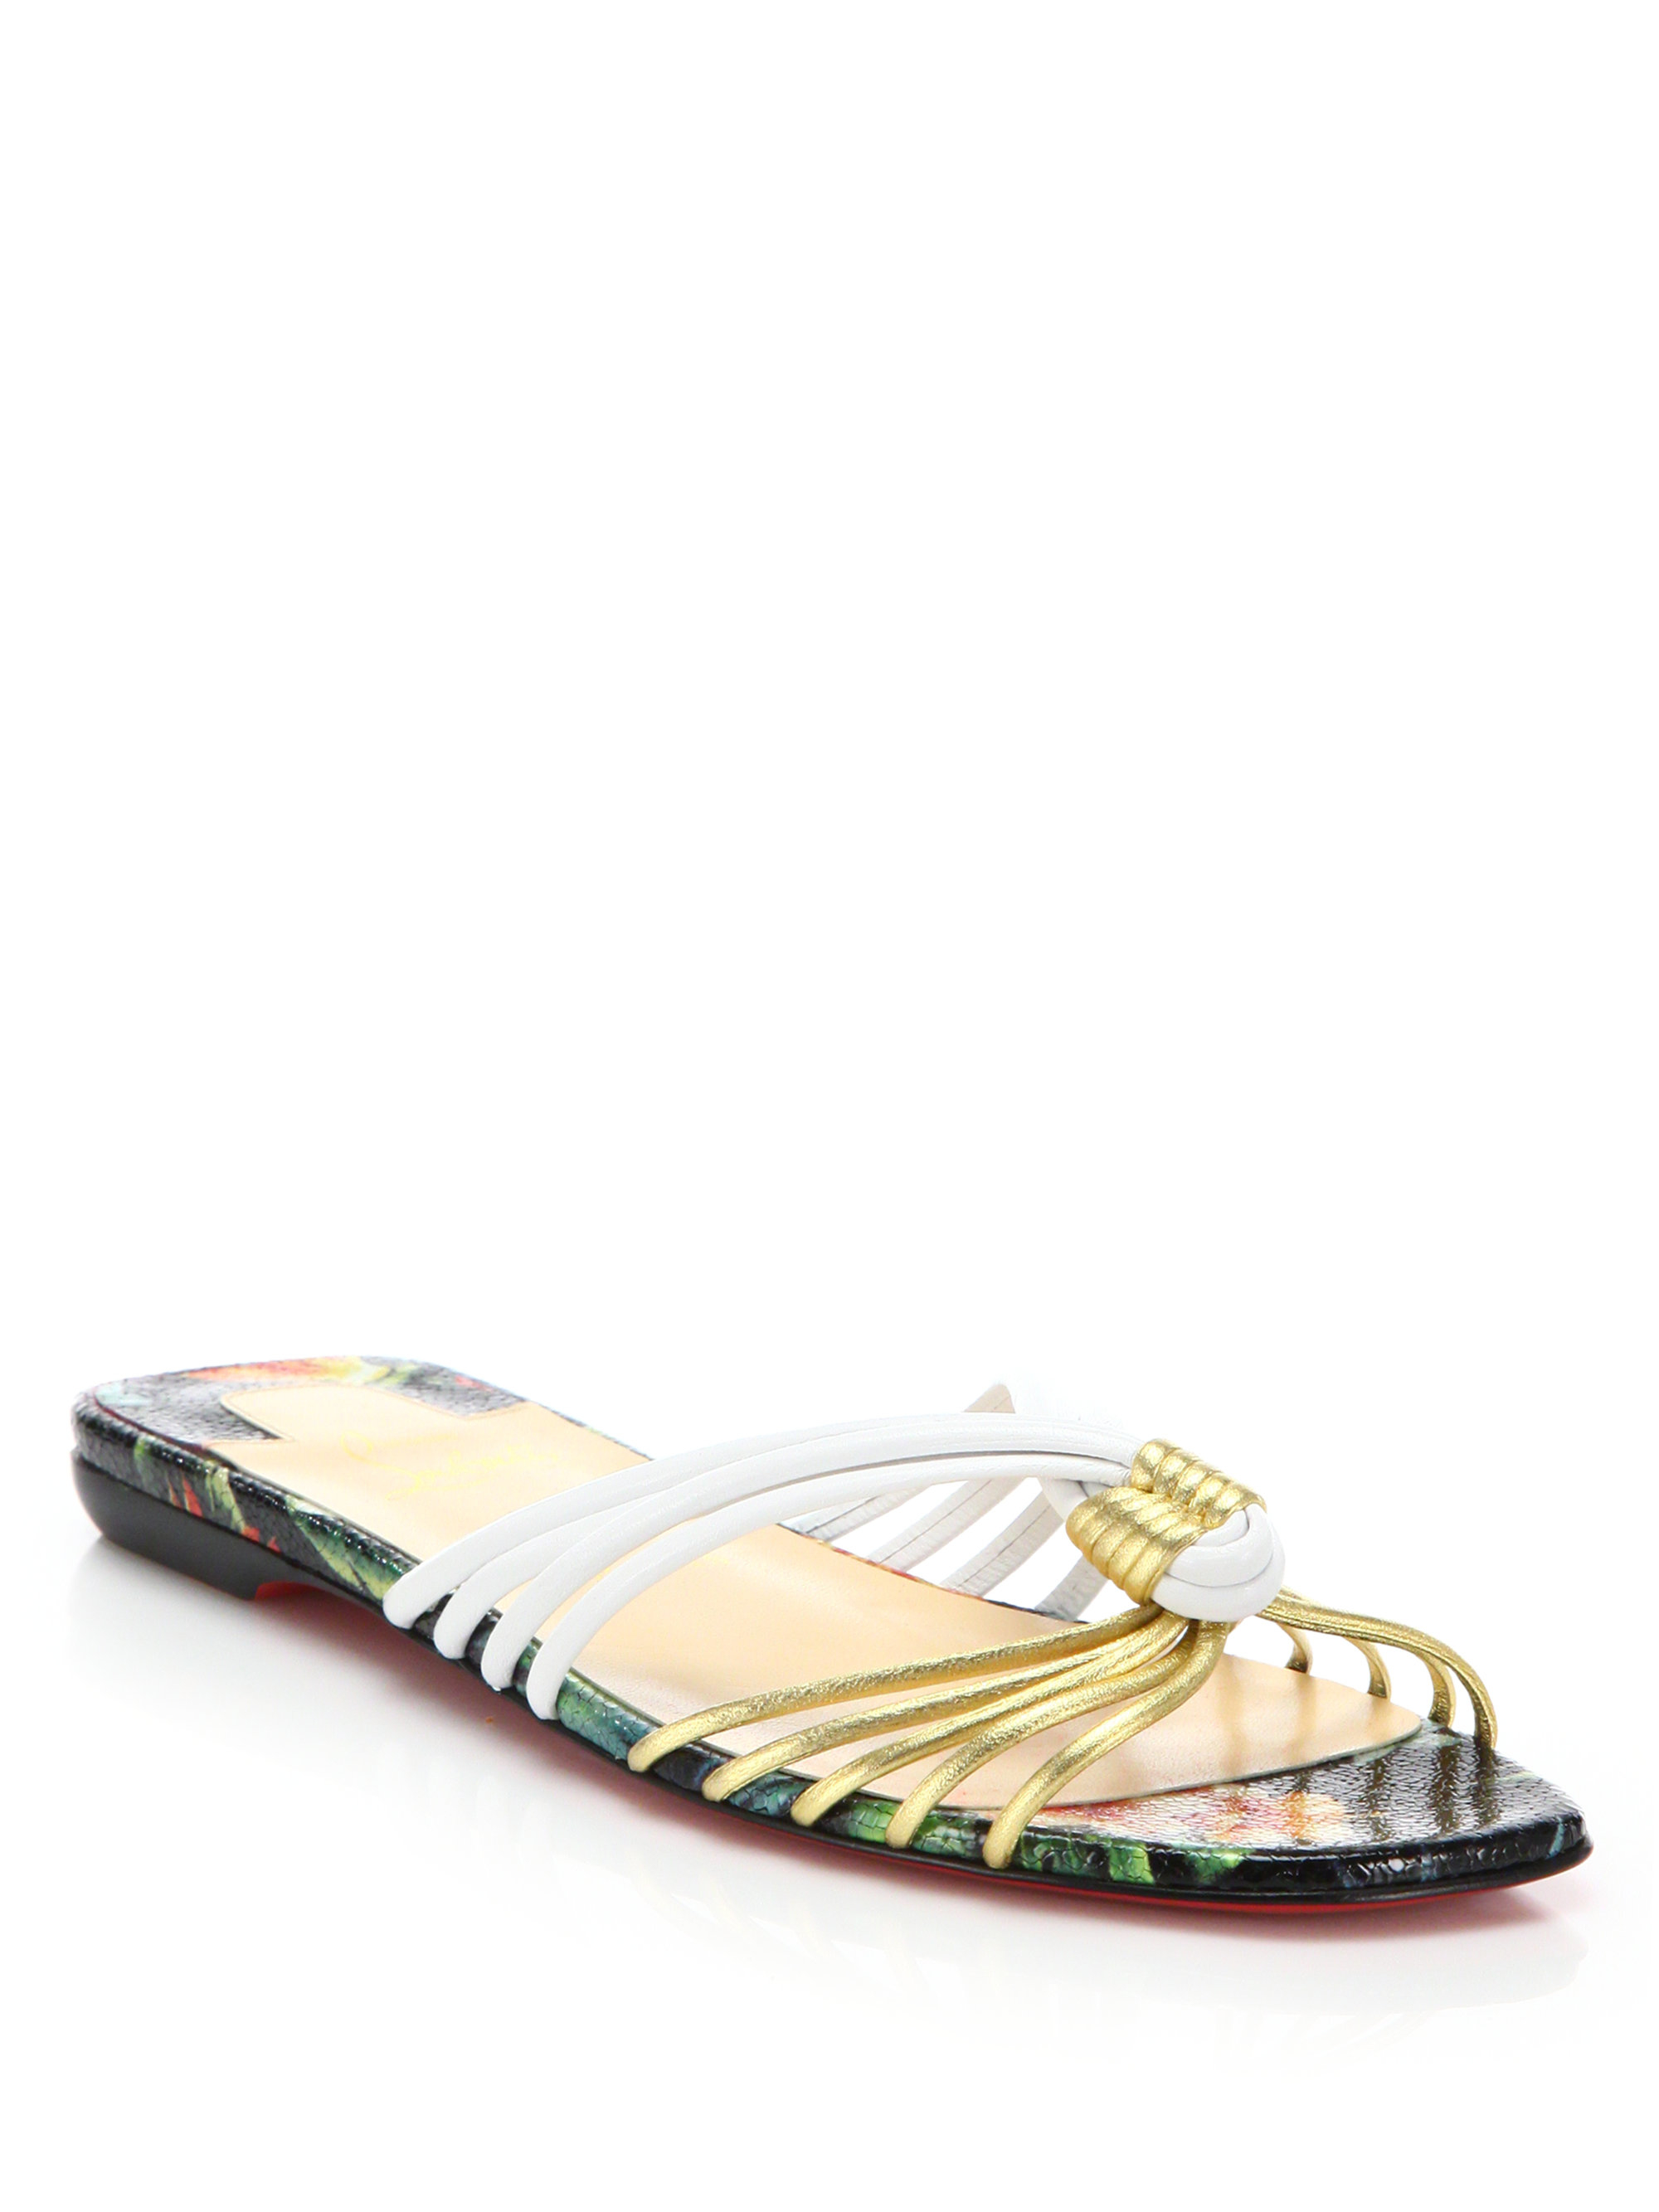 Christian Louboutin Metallic Slide Sandals